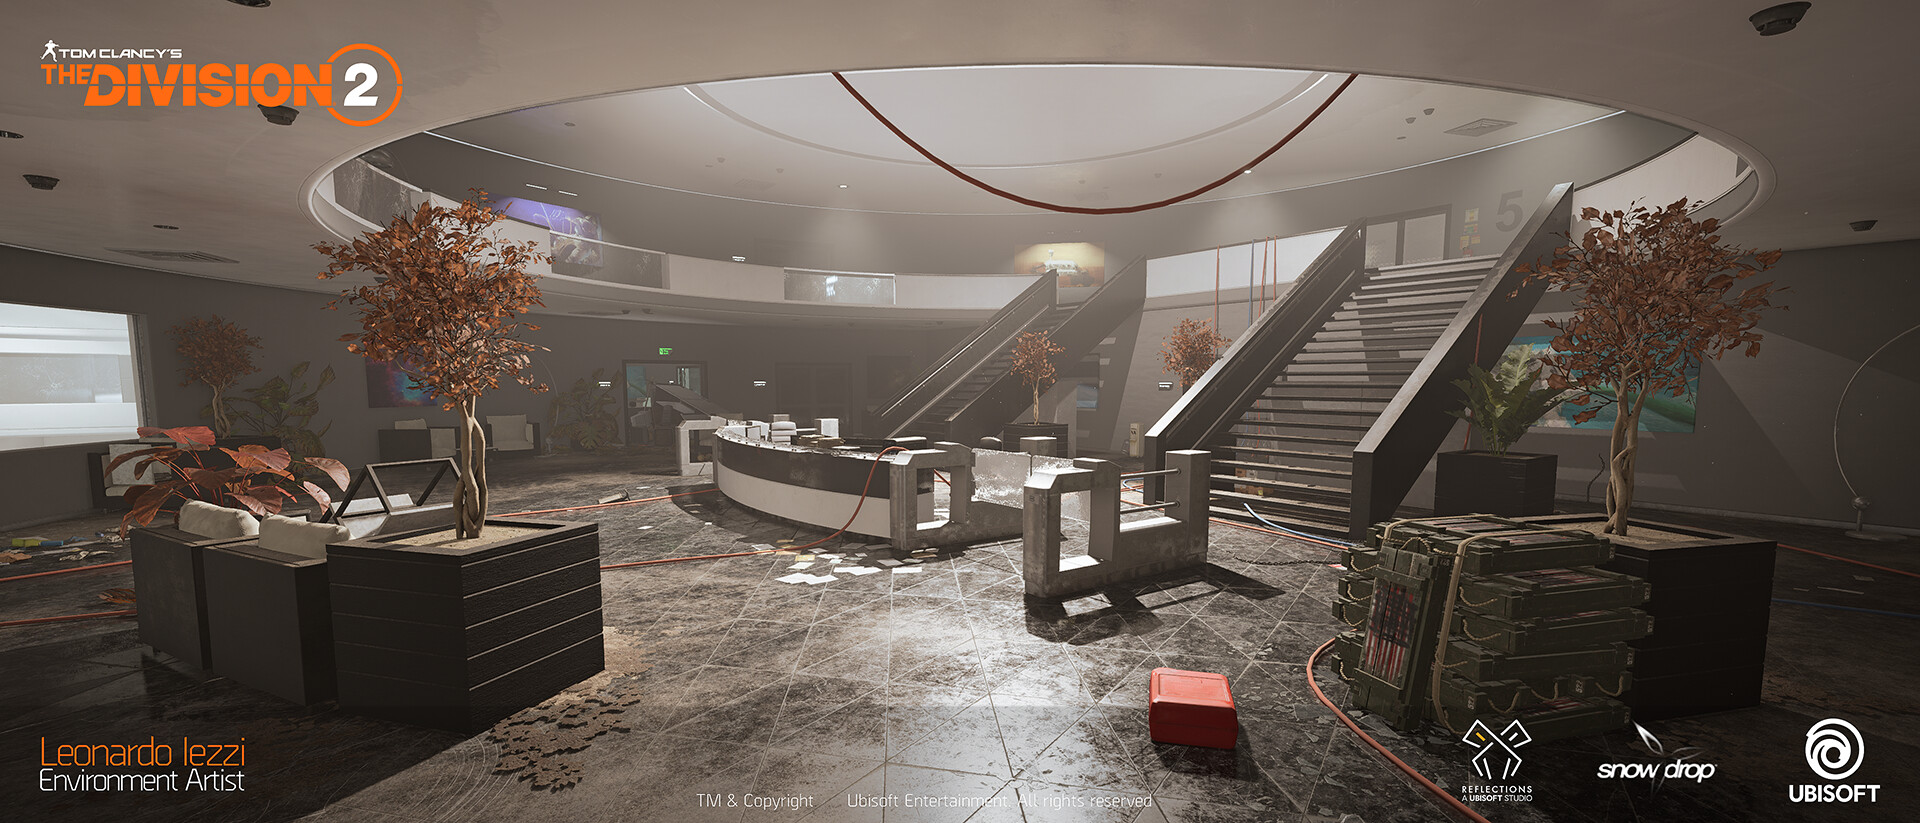 Leonardo iezzi leonardo iezzi the division 2 environment art 02 atrium 037 wide